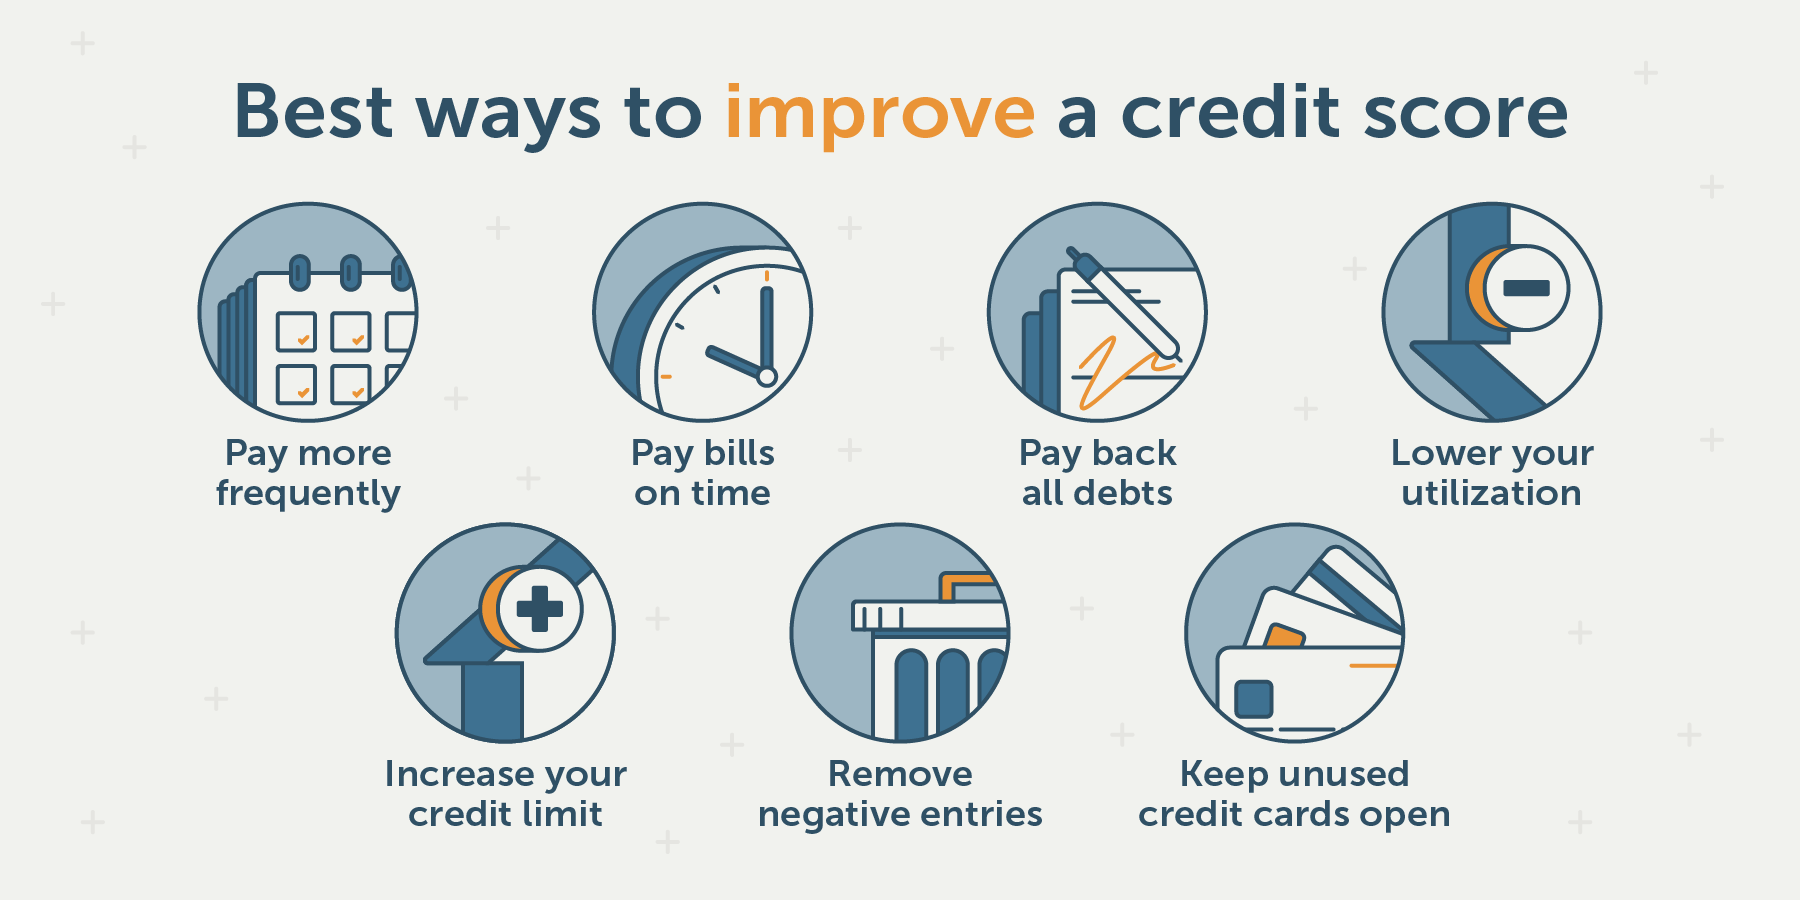 7 habits to improve a credit score